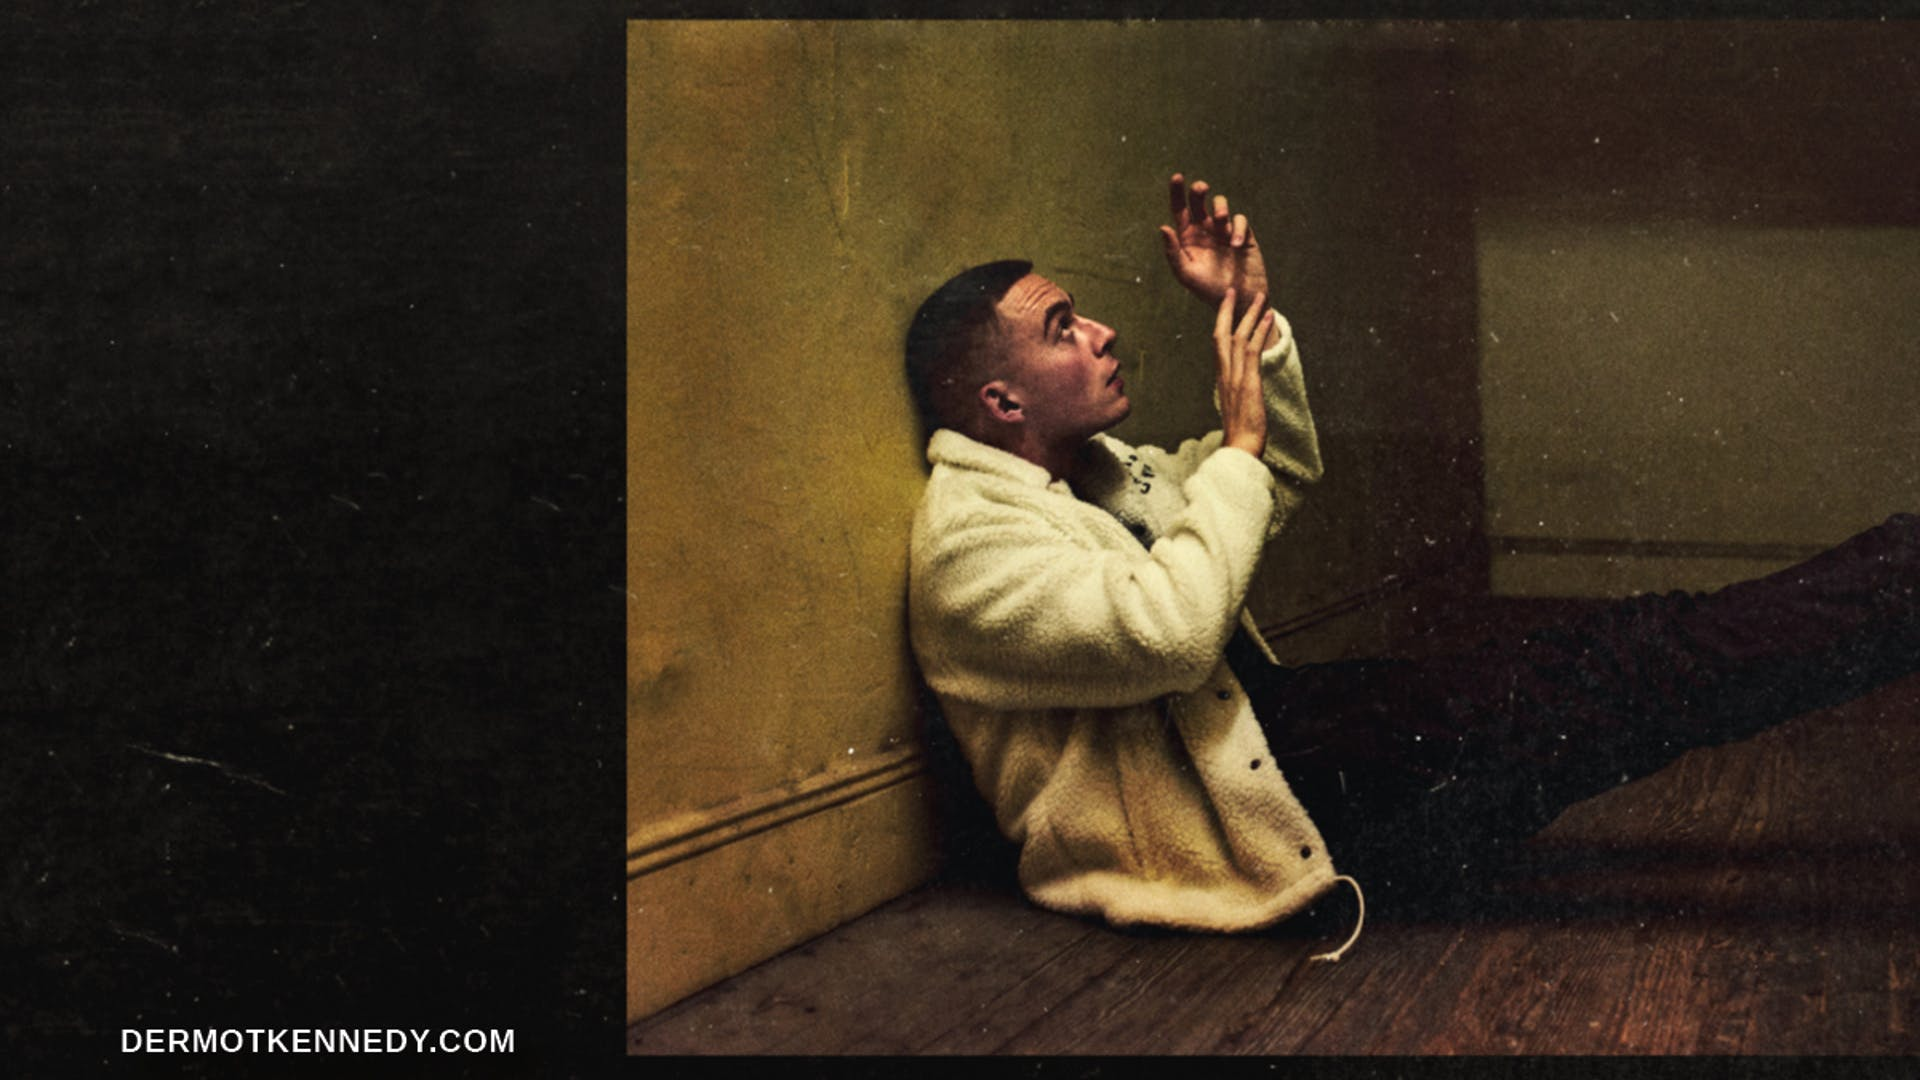 Sold Out: Dermot Kennedy